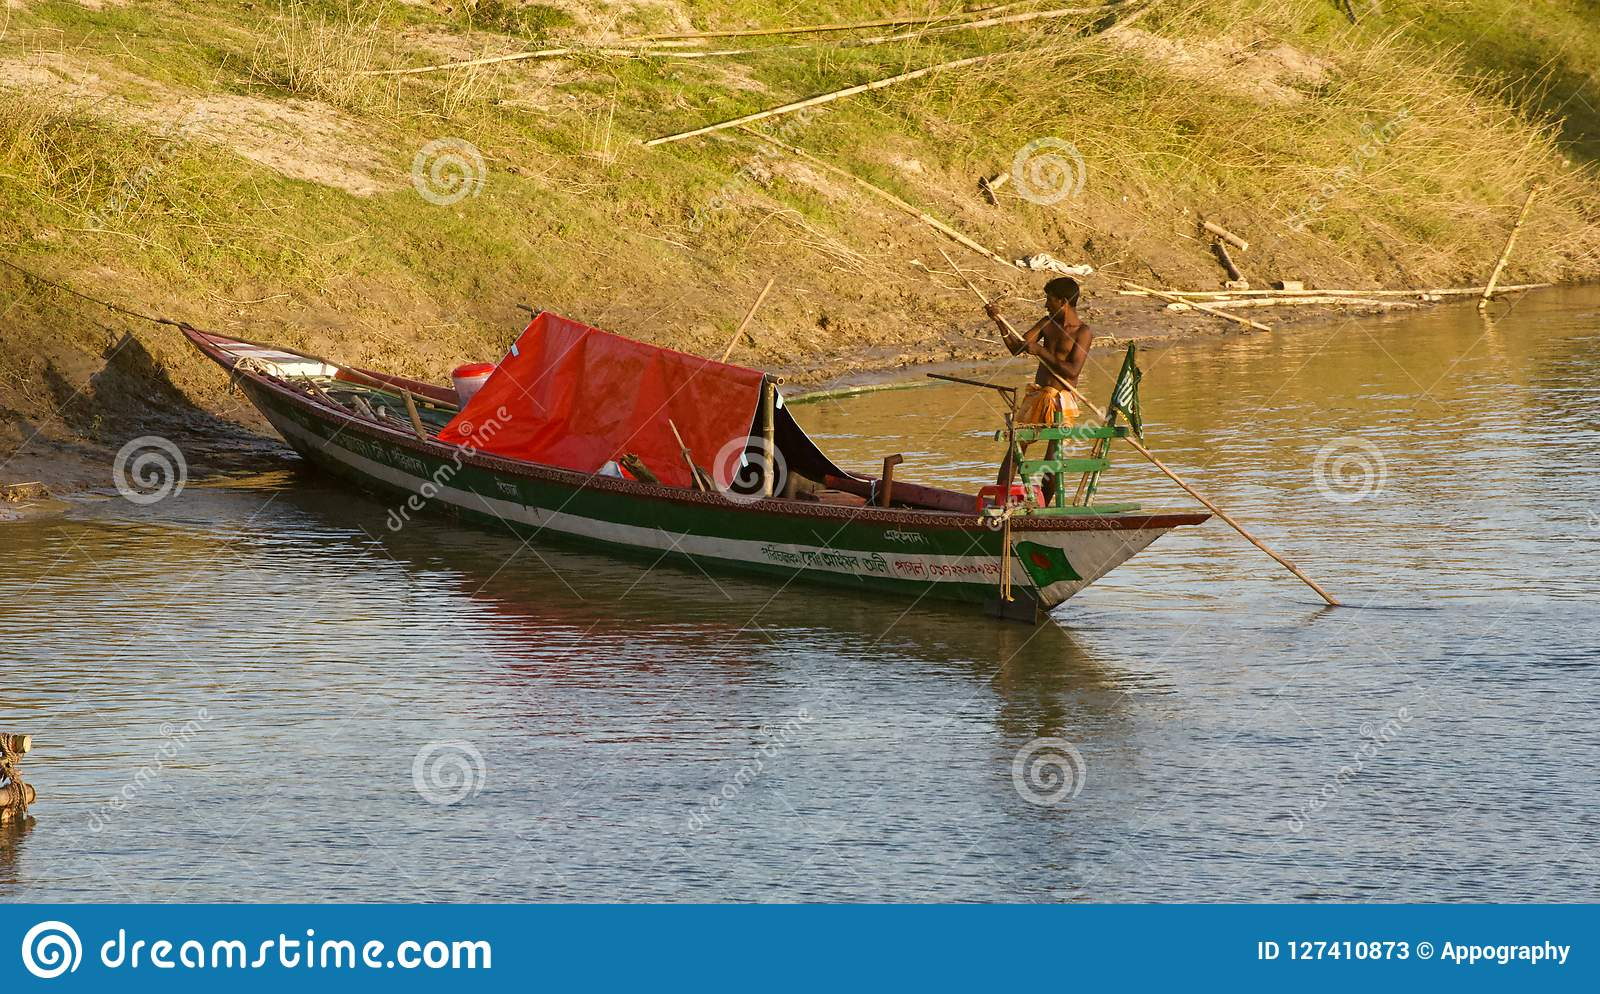 Man on a small boat around a river bank area